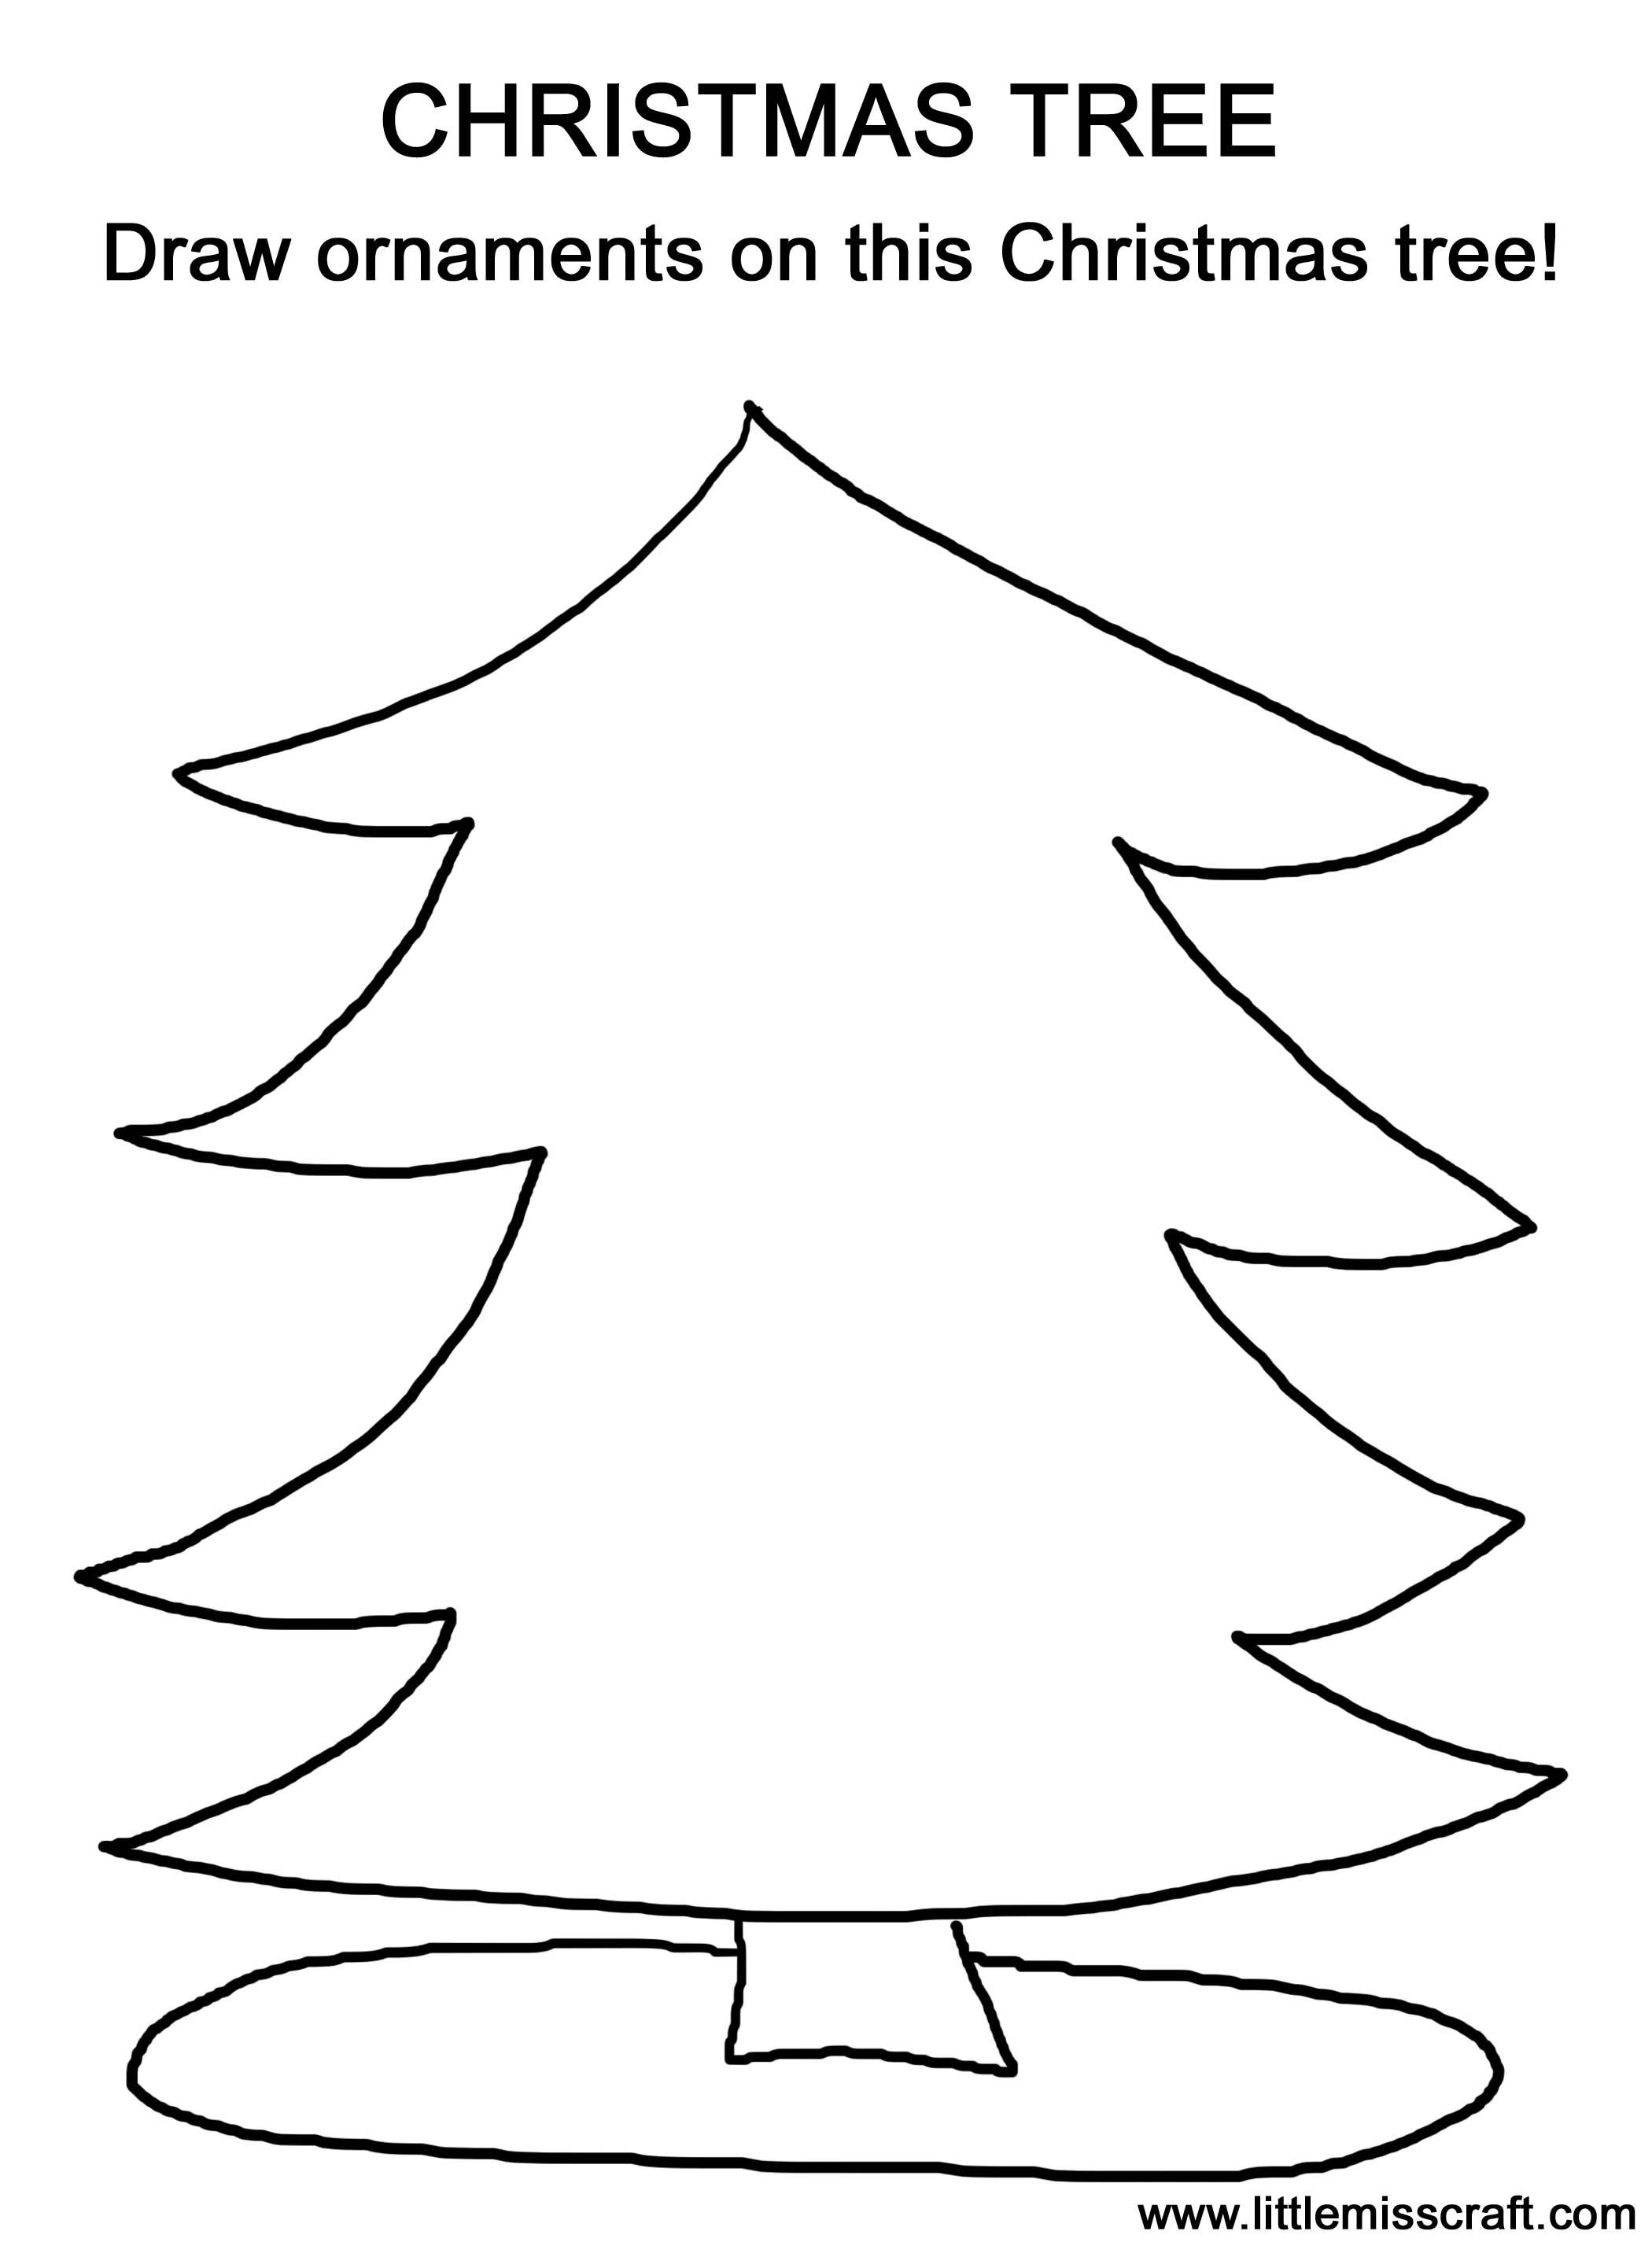 Crafts Christmas Tree Doodle Coloring Page Christmas Tree Drawing Doodle Coloring Tree Doodle